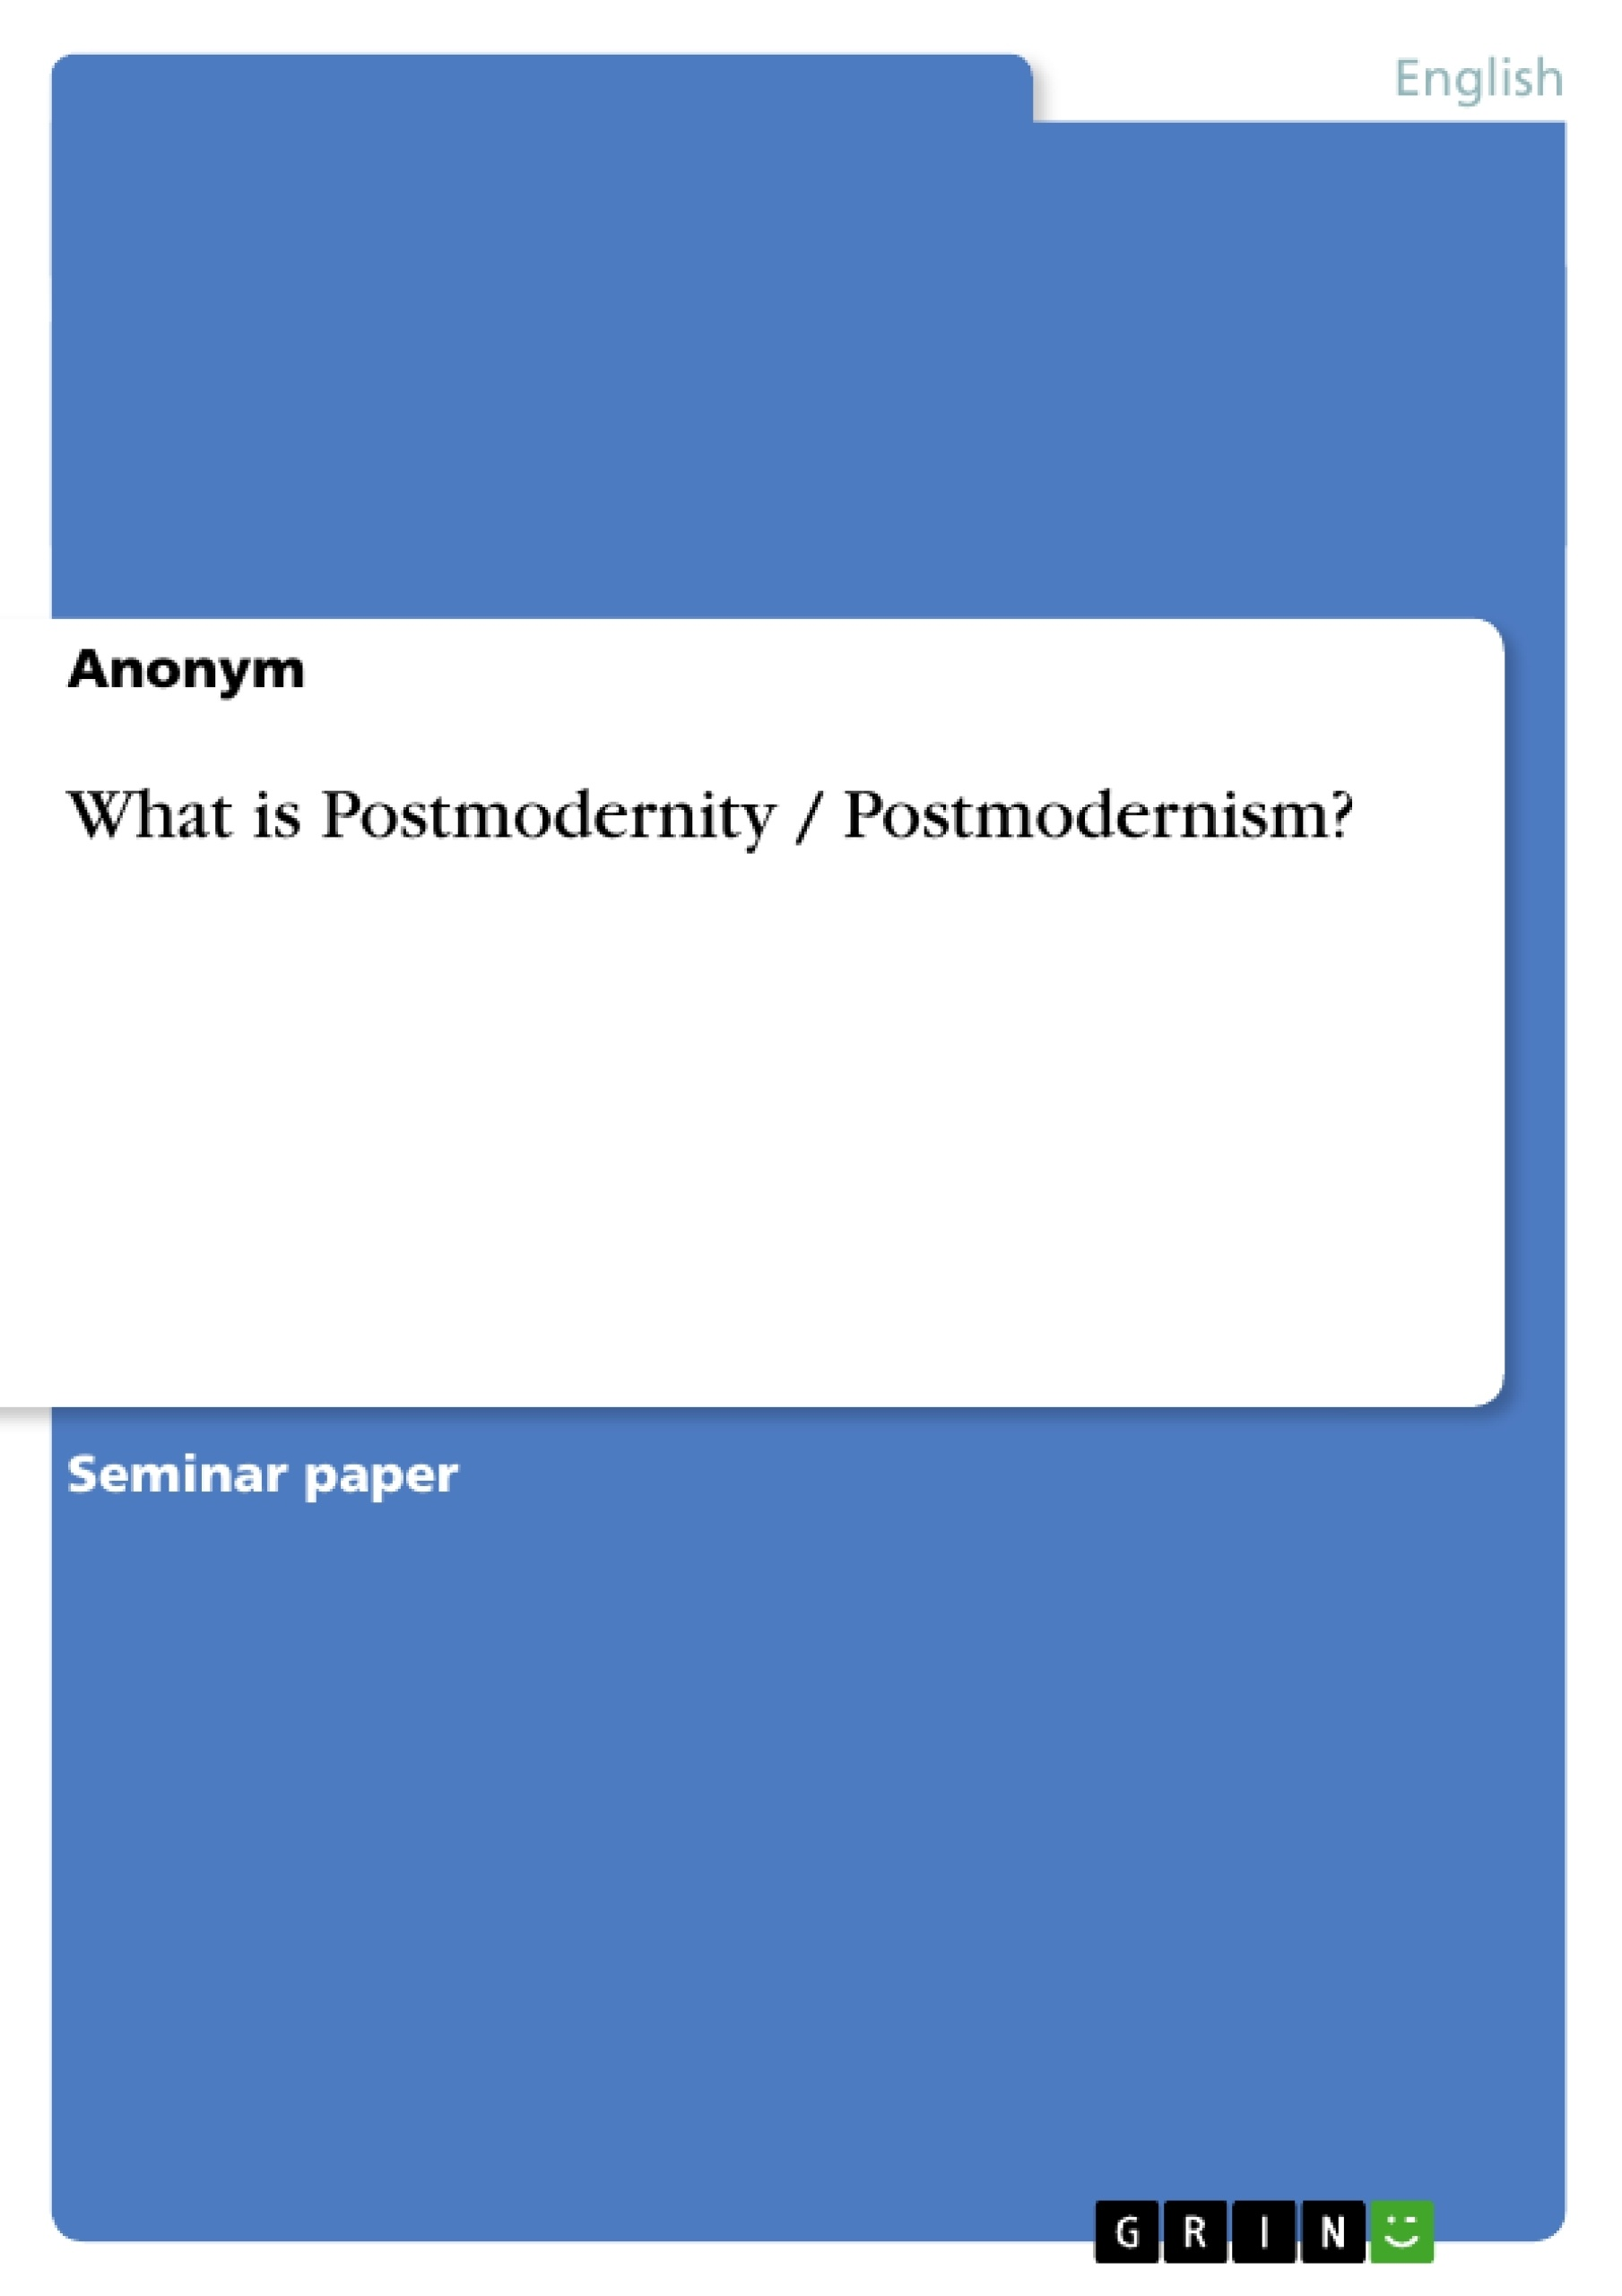 Title: What is Postmodernity / Postmodernism?